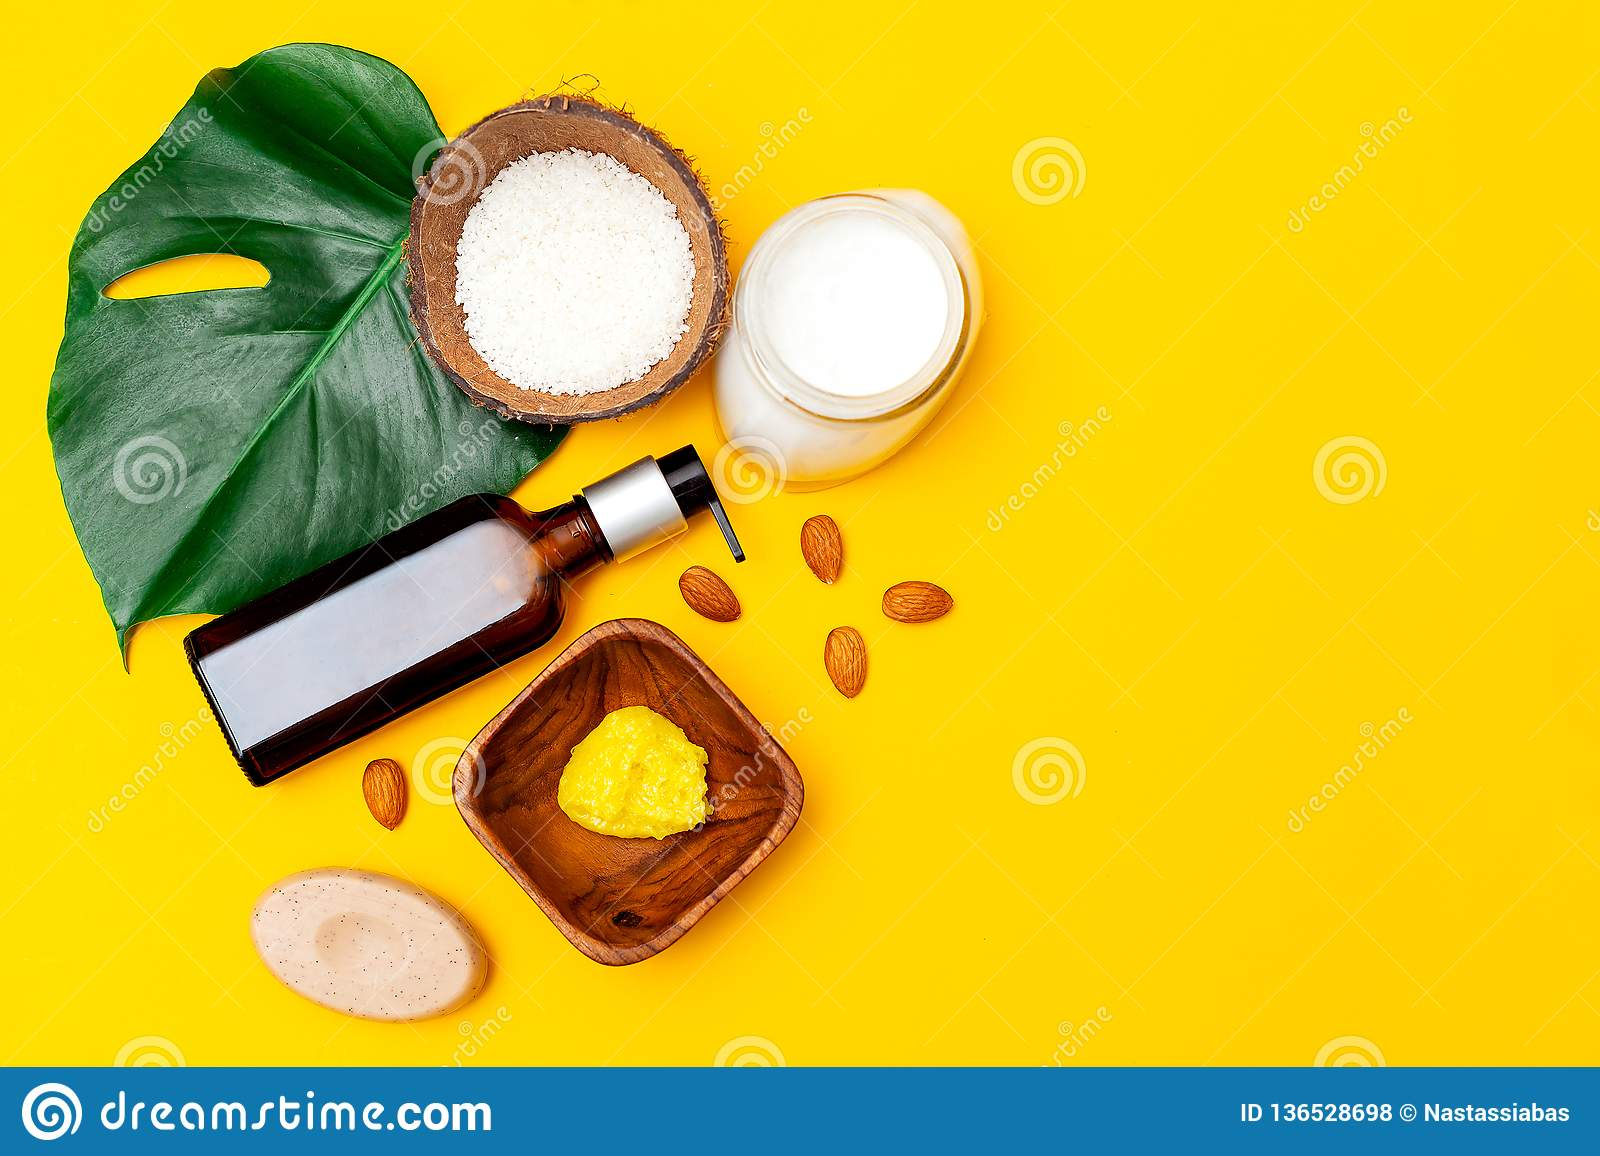 Organic Skin Care Set On Yellow Background Copy Space Stock Photo Image Of Leaf Chips 136528698